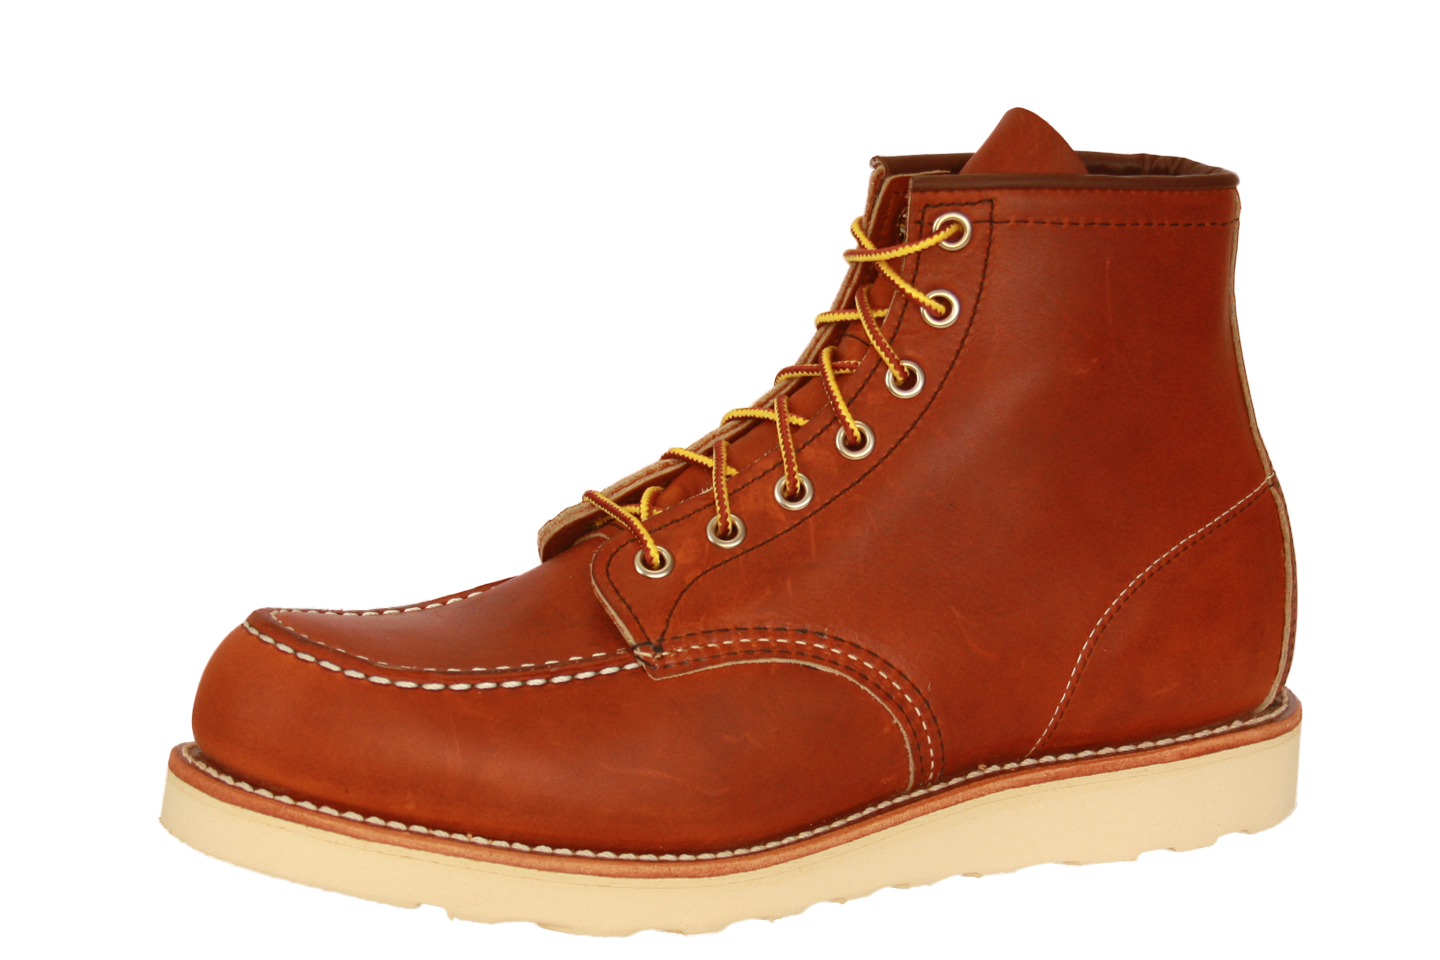 Red Wing Boots For Sale Hs2CvzIE